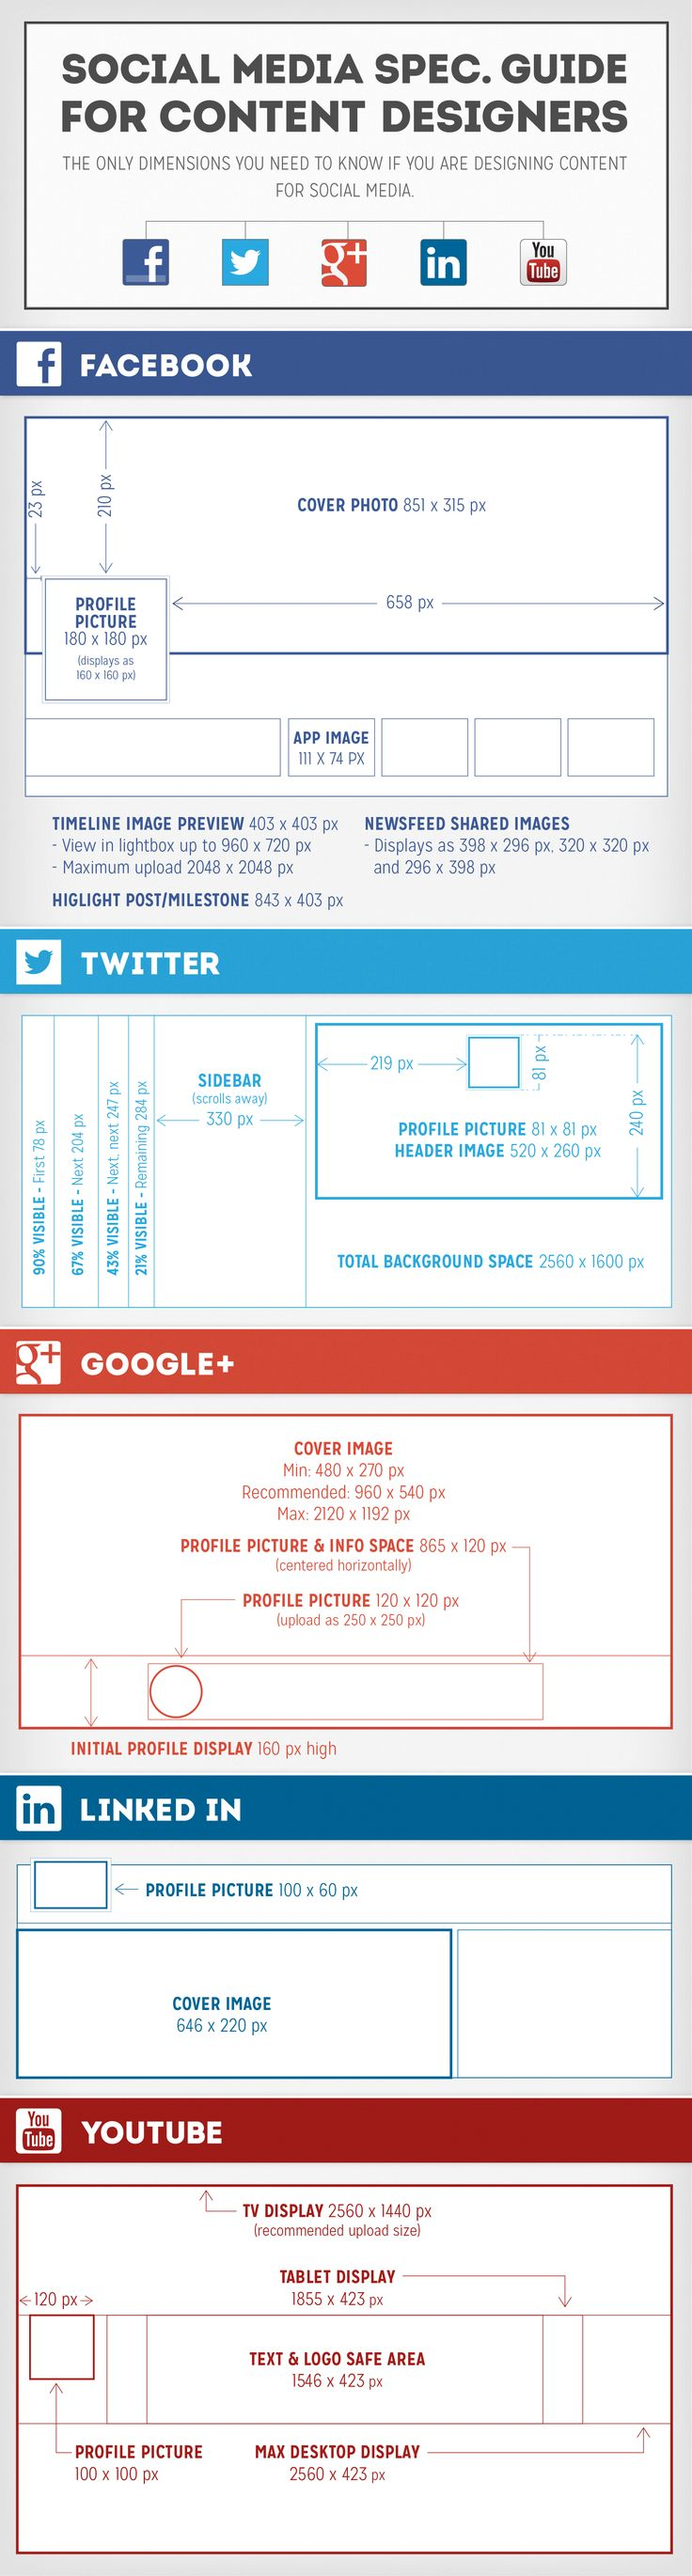 Facebook, Twitter, Google+, LinkedIn, YouTube: Social Media Image Size Guide [INFOGRAPHIC]